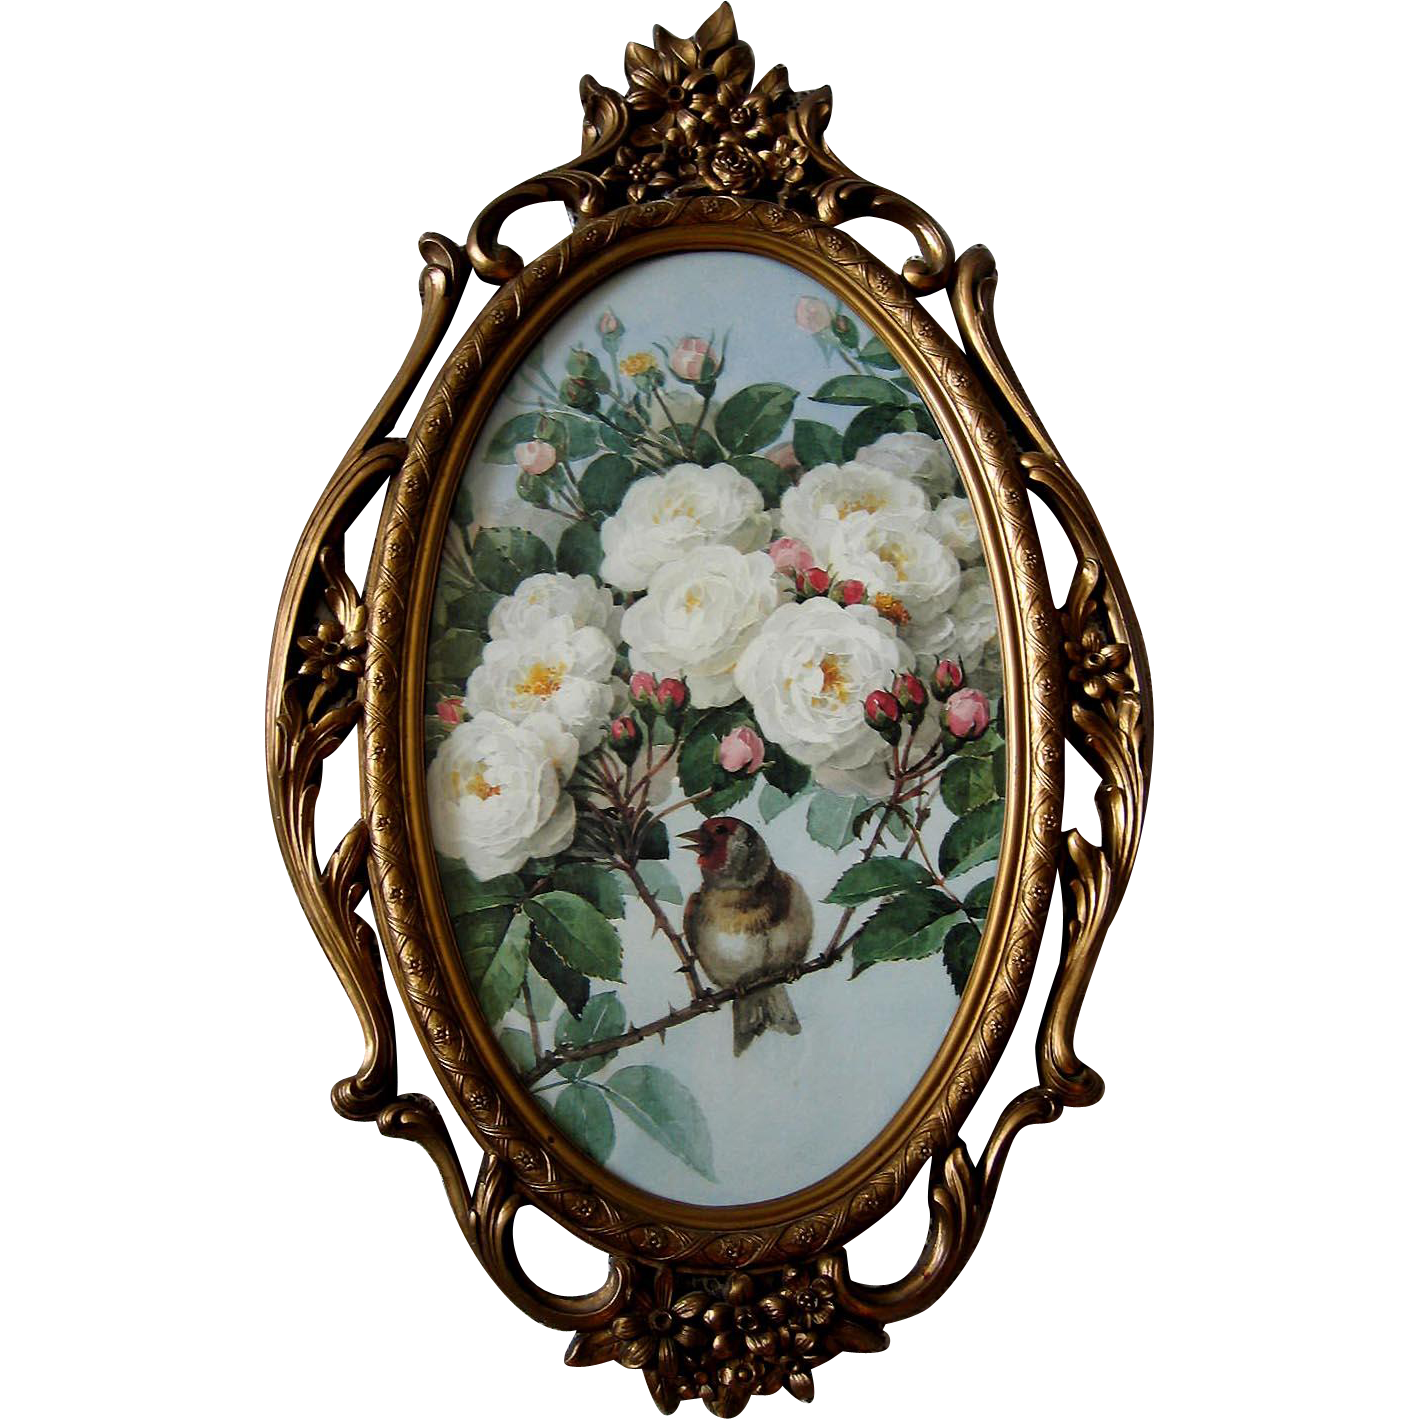 Paul de Longpre White Bride Roses Bird Print Fancy Homco Syroco Frame Yard Long